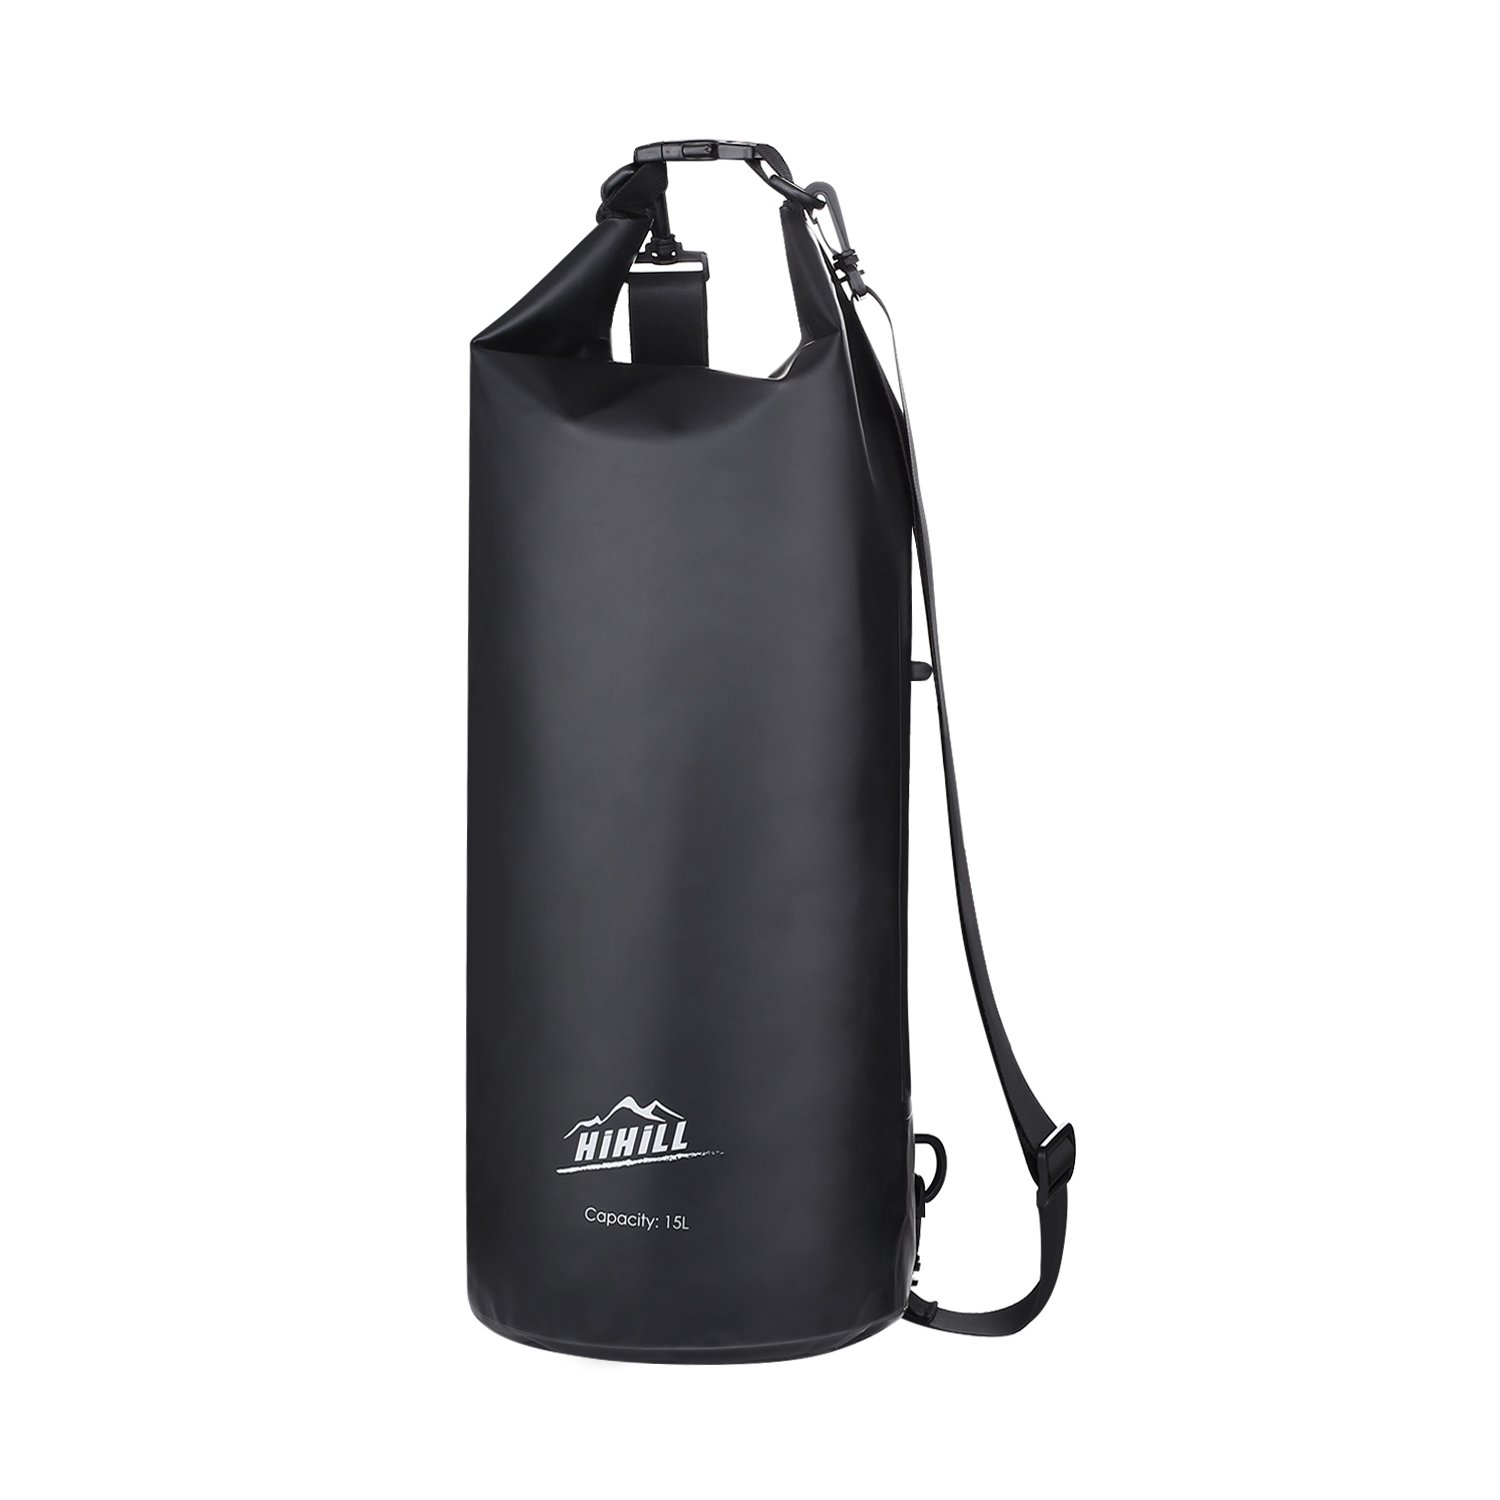 HiHiLL Waterproof Dry Bag, PVC Gear Dry with Earphone Interface, Detachable Shoulder Straps for Kayaking, Beach, Boating, Hiking, Fishing Outdoors with Waterproof Phone Case